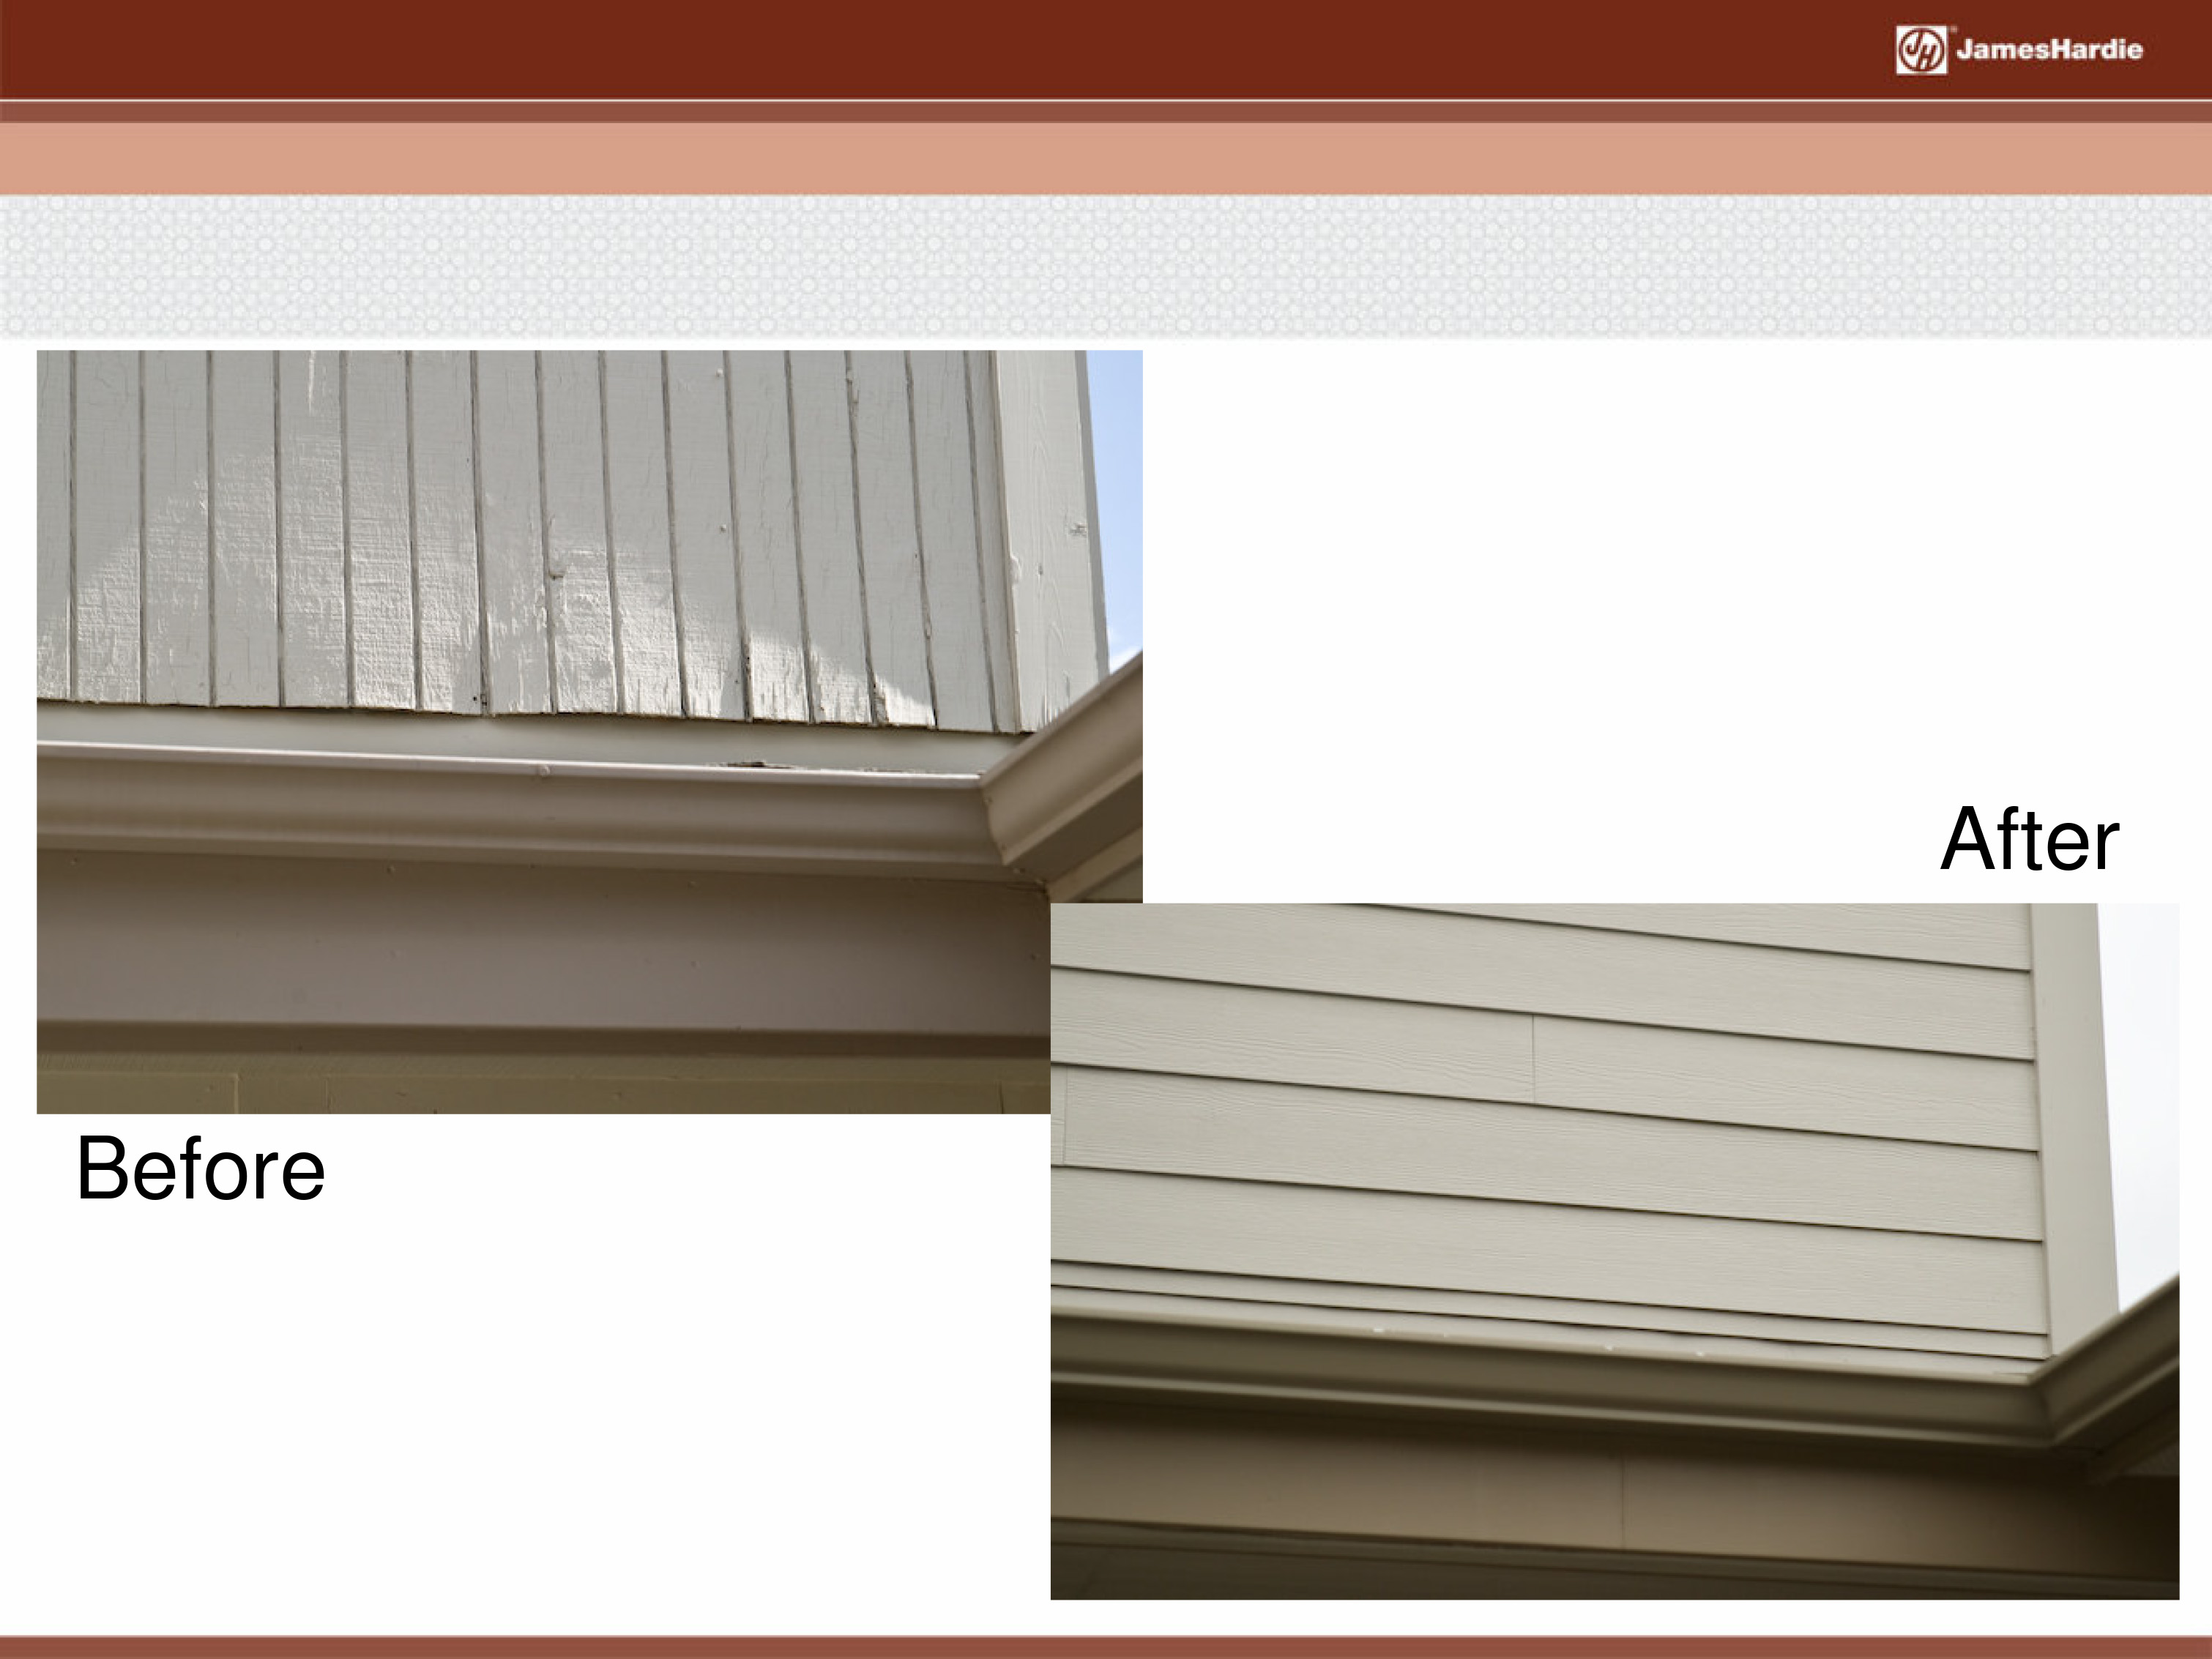 Before and After James Hardie Siding 37